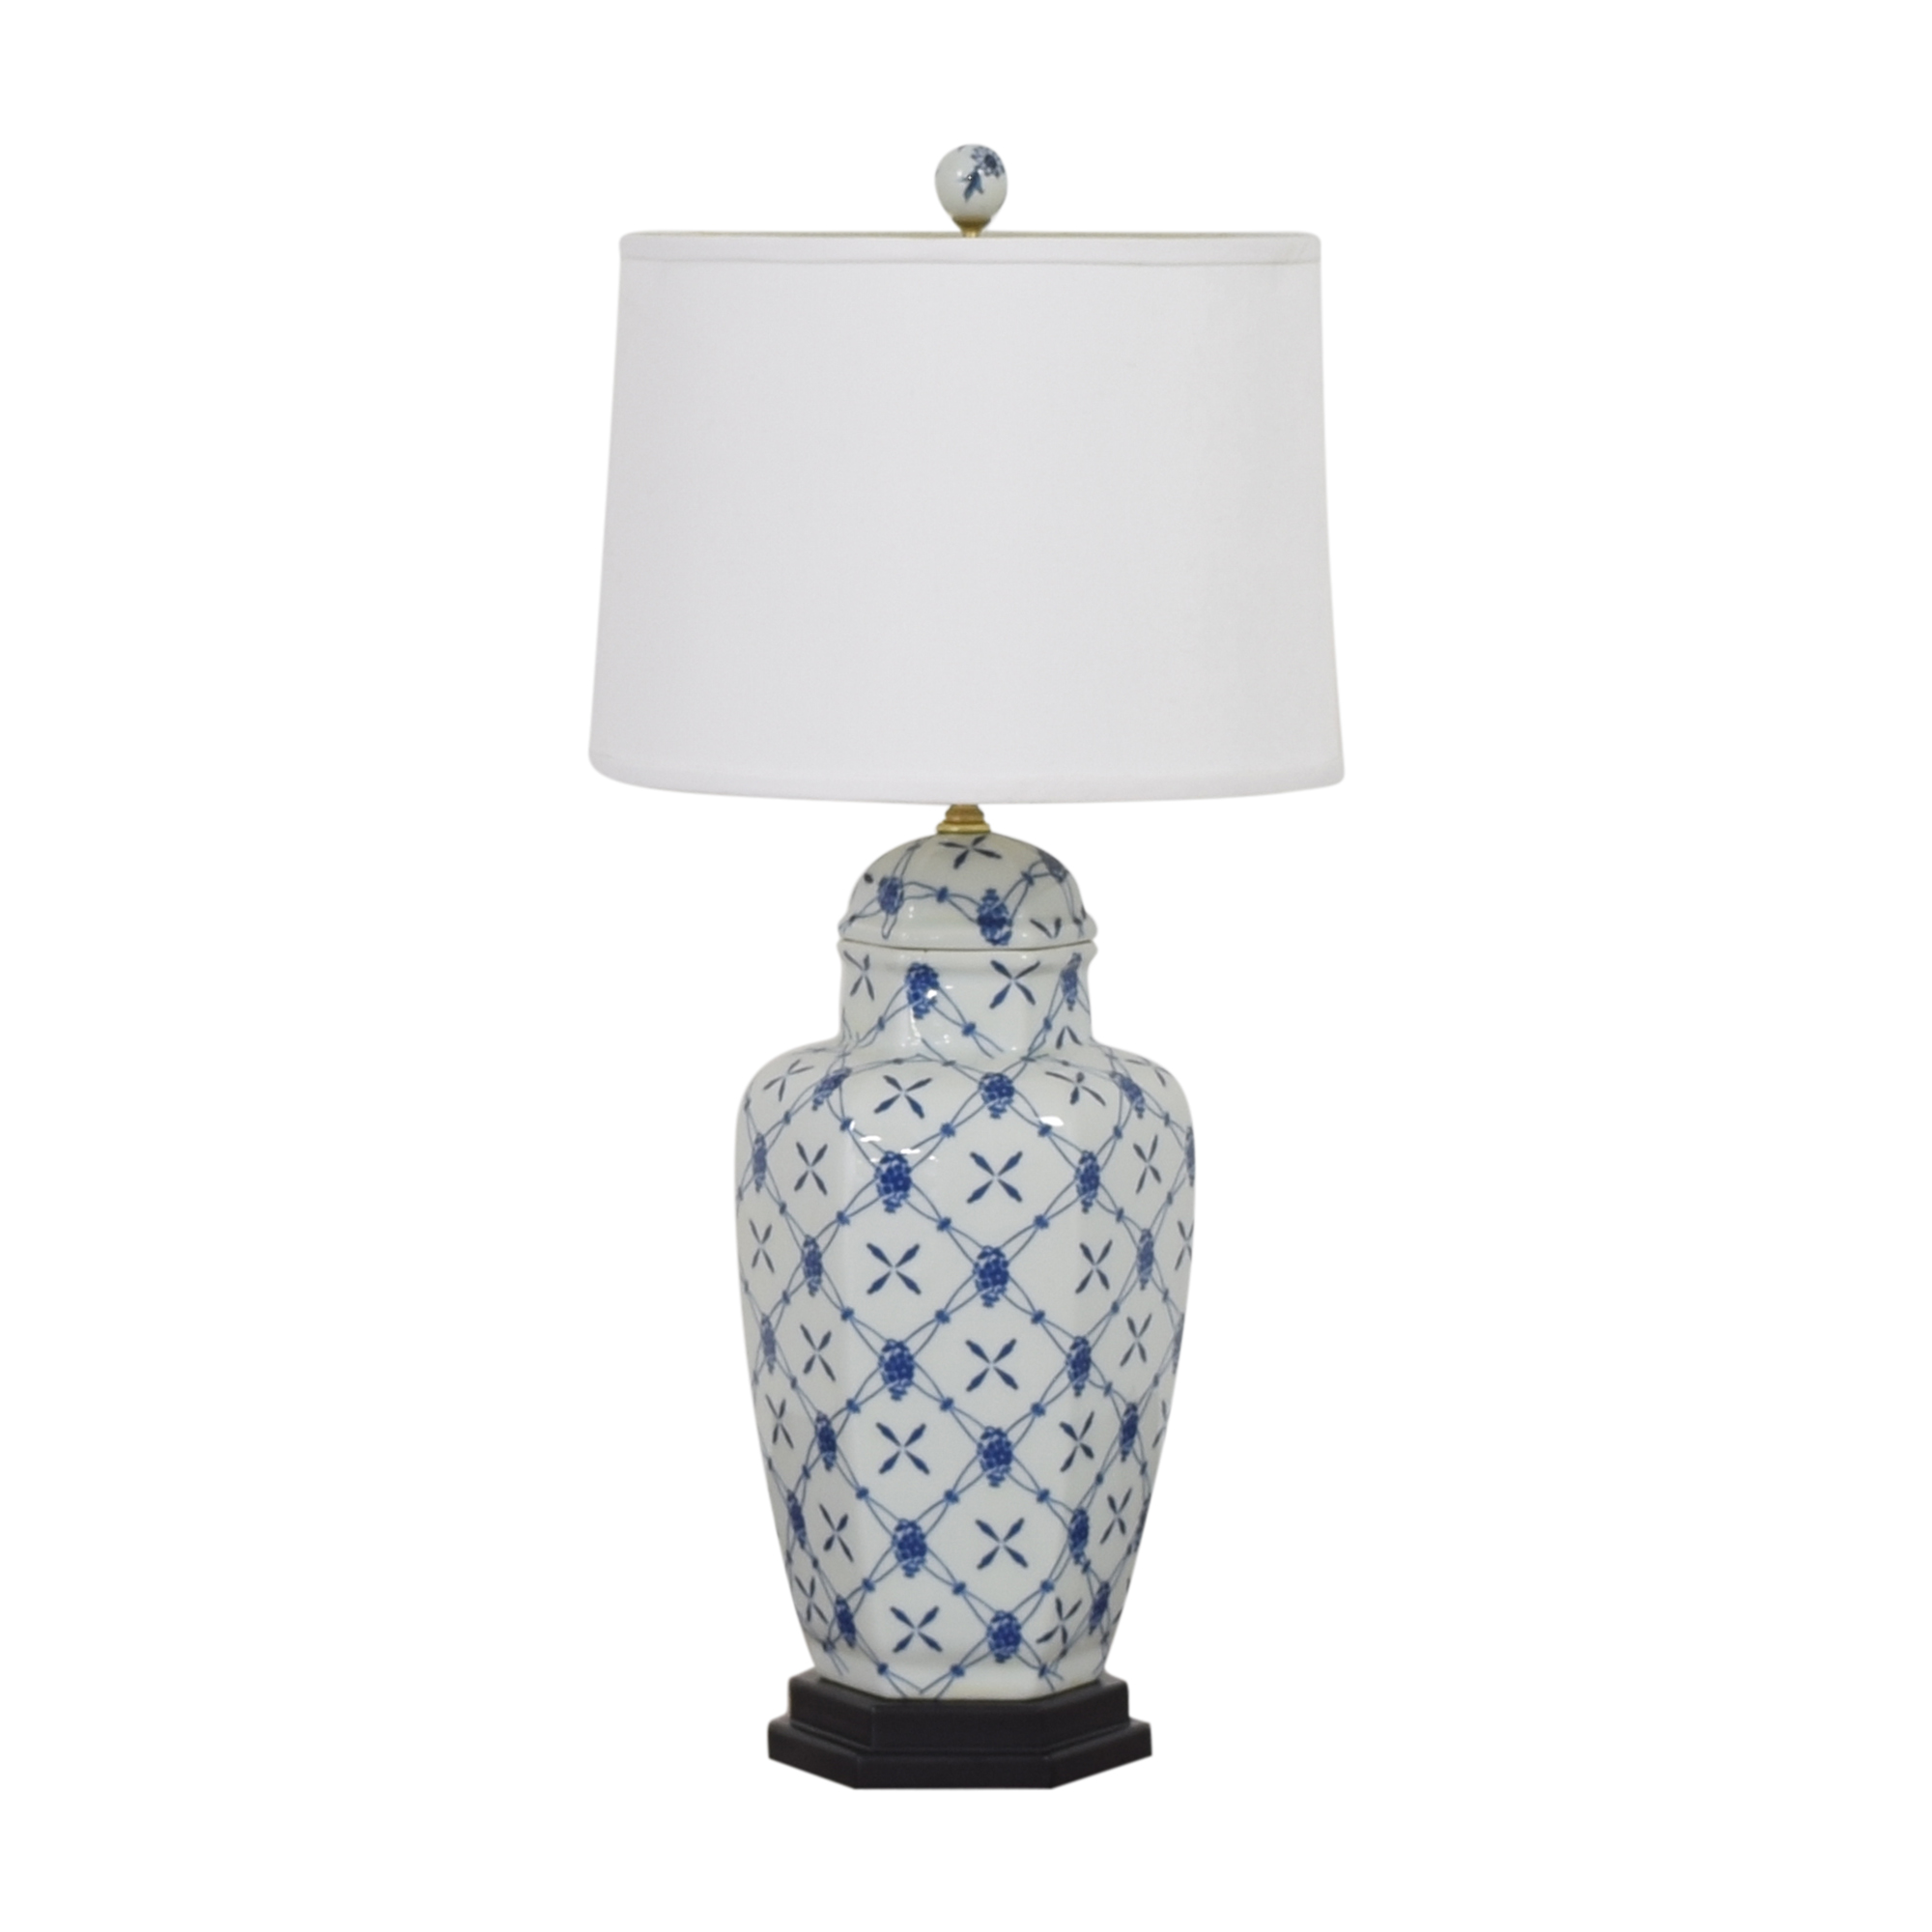 Vase Table Lamp Lamps